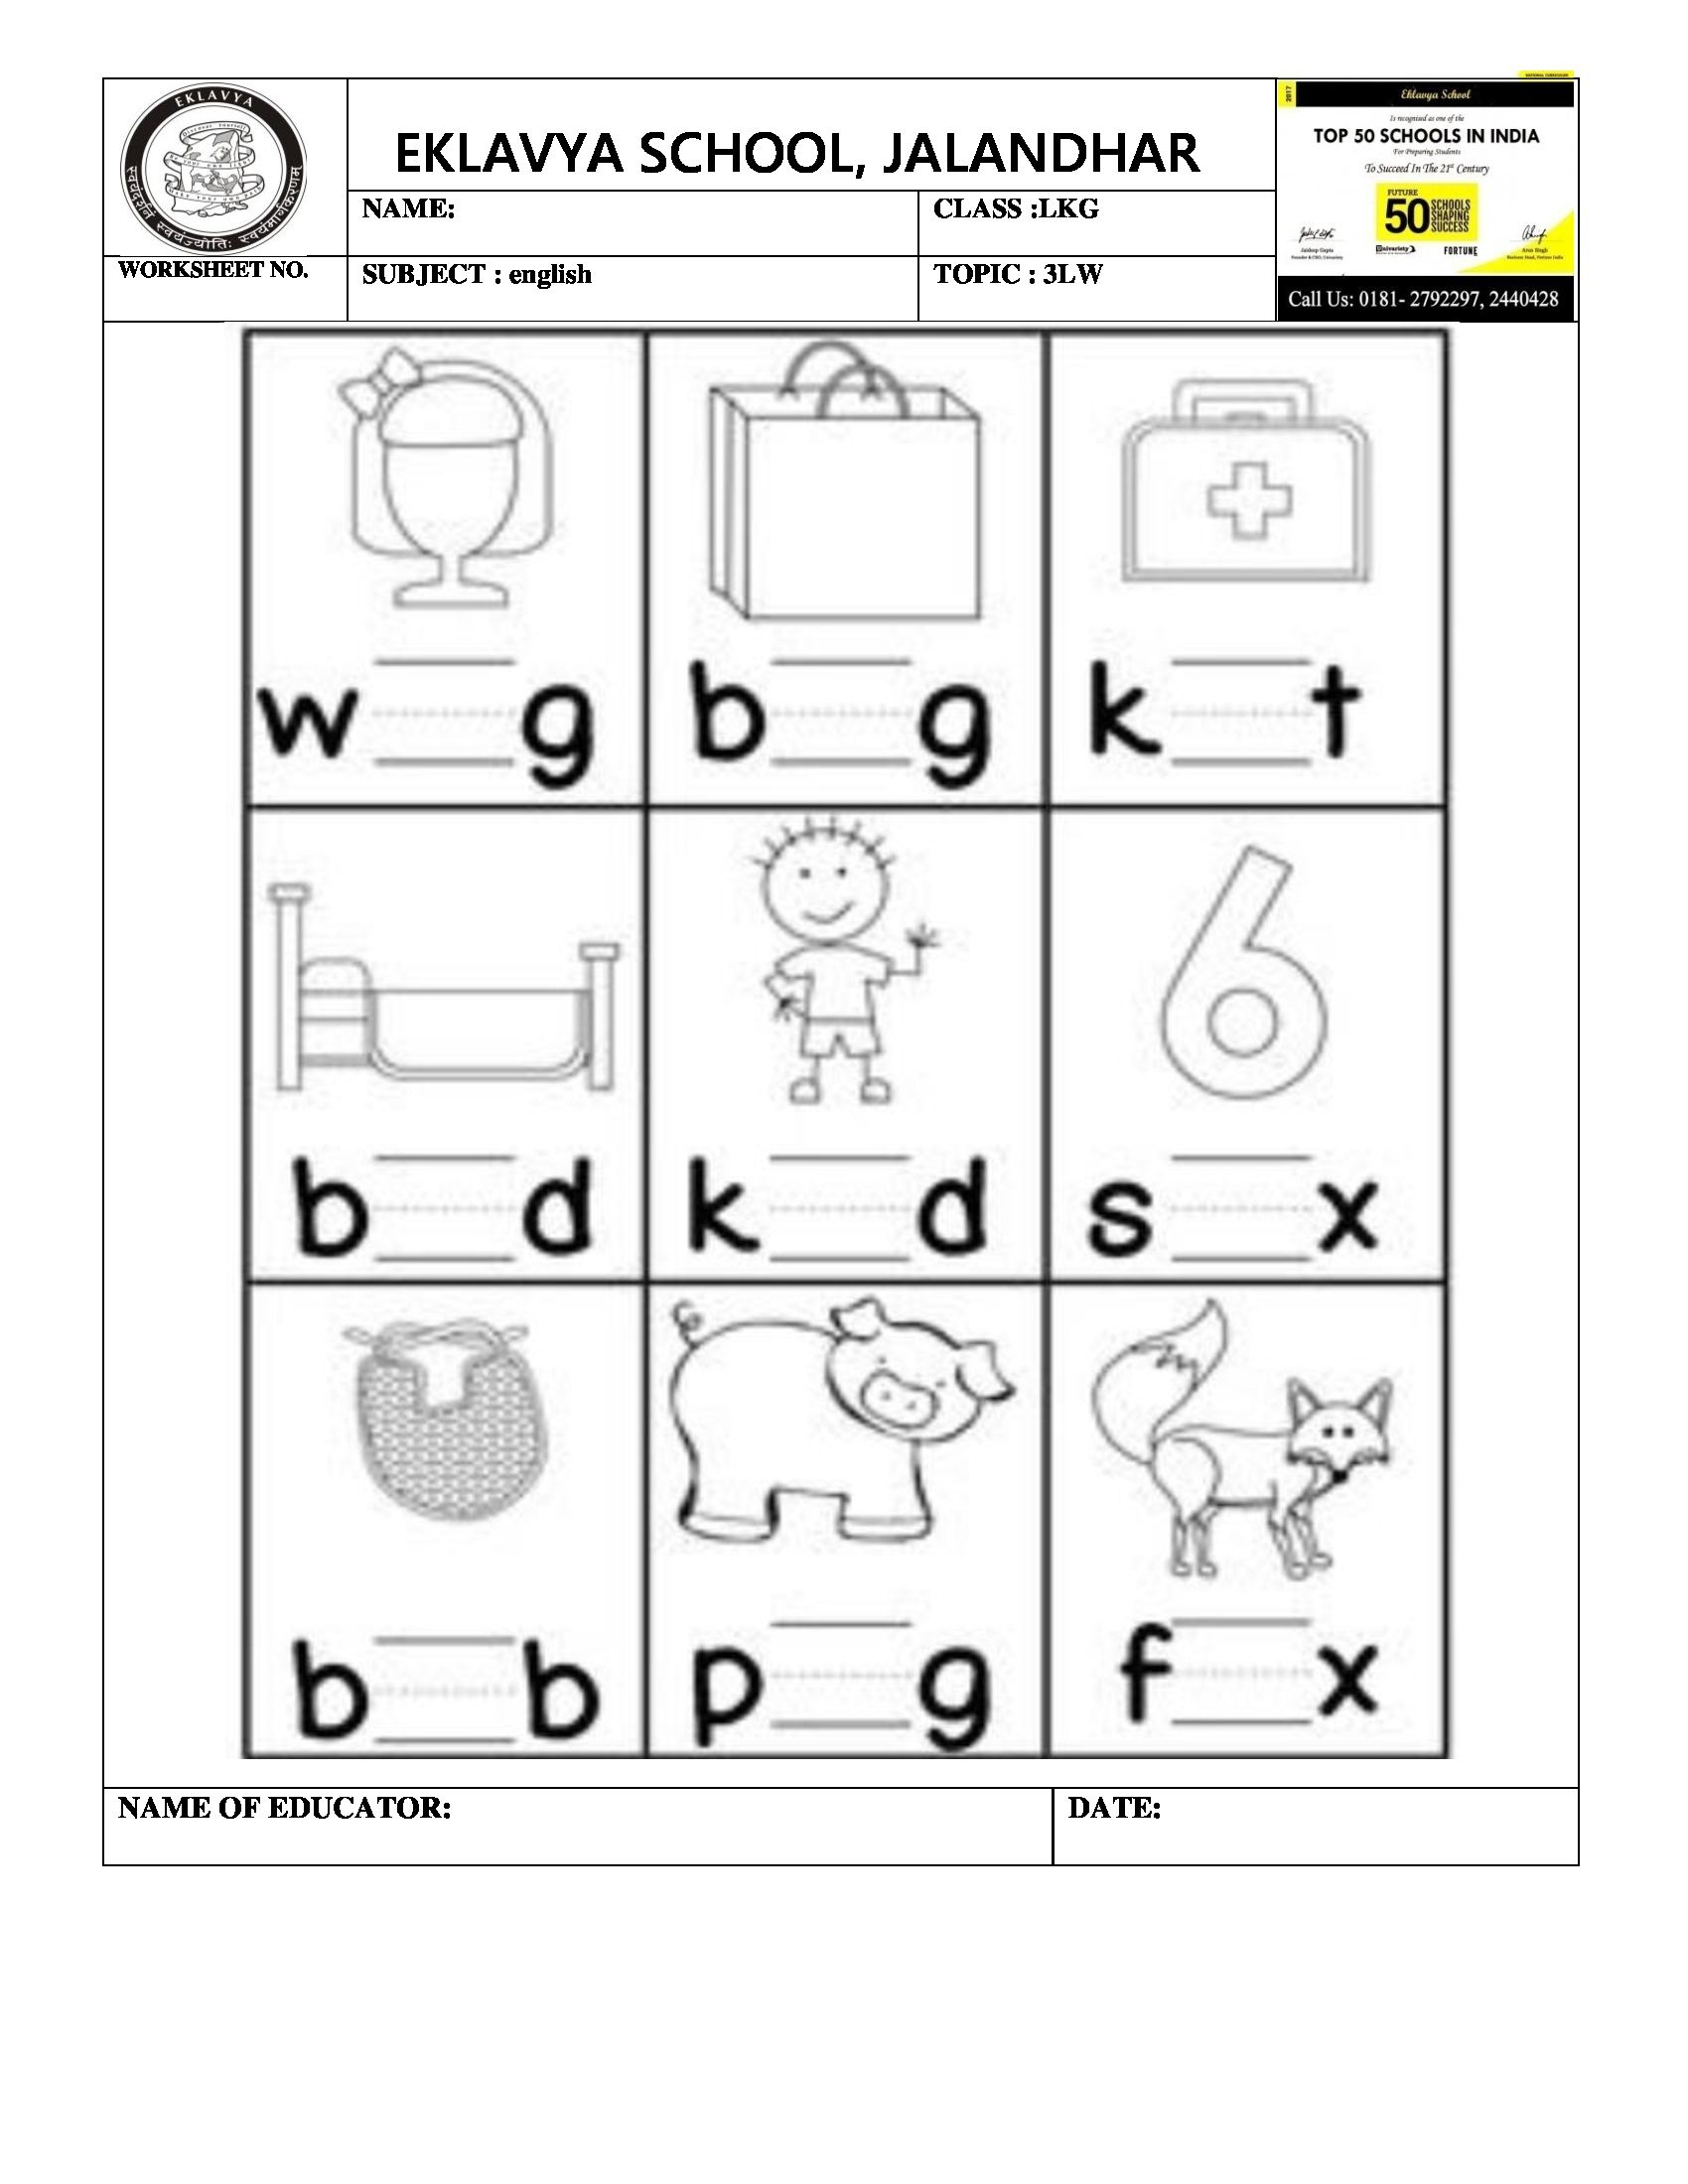 Worksheet On Three Letter Words 'i' In The Middle for Tracing 3 Letter Words Worksheets